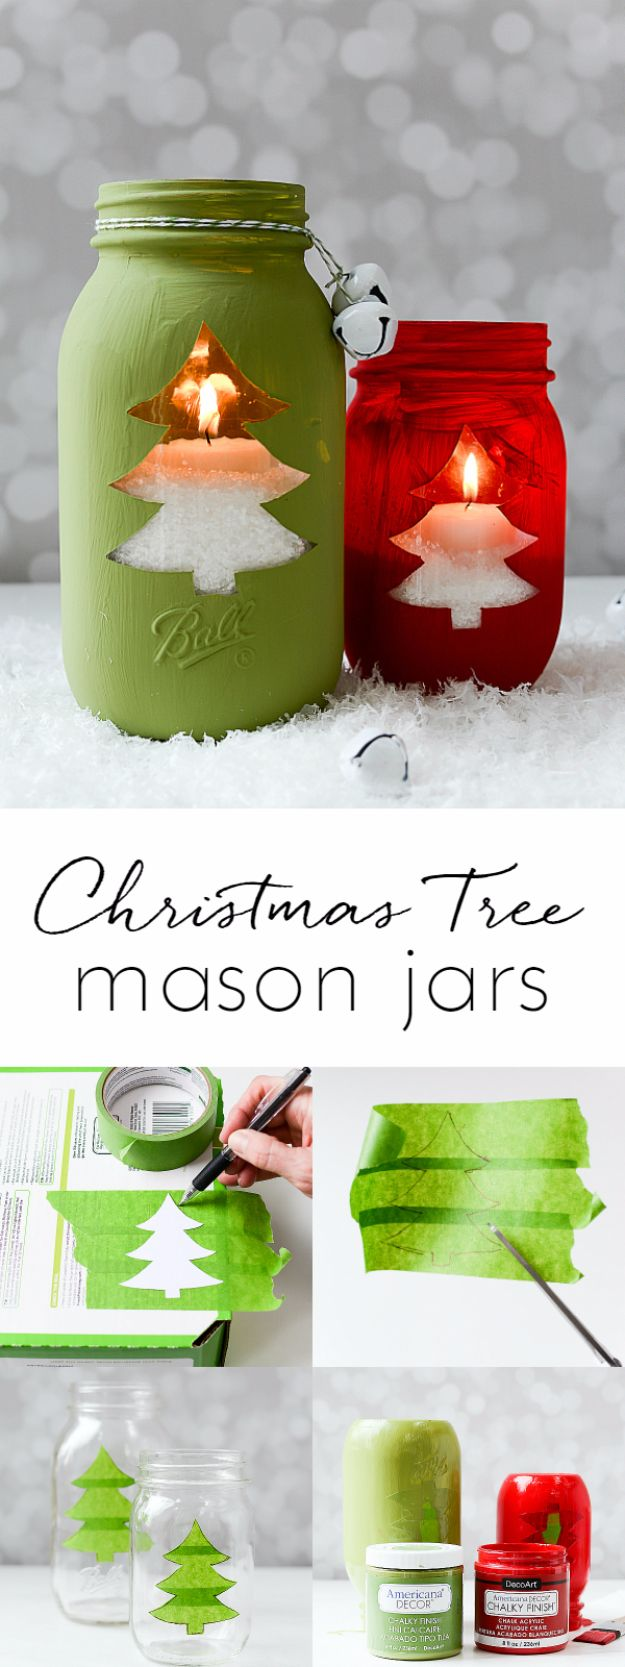 Cheap DIY Christmas Decor Ideas and Holiday Decorating On A Budget - Christmas Tree Mason Jars - Easy and Quick Decorating Ideas for The Holidays - Cool Dollar Store Crafts for Xmas Decorating On A Budget - wreaths, ornaments, bows, mantel decor, front door, tree and table centerpieces - best ideas for beautiful home decor during the holidays http://diyjoy.com/cheap-diy-christmas-decor